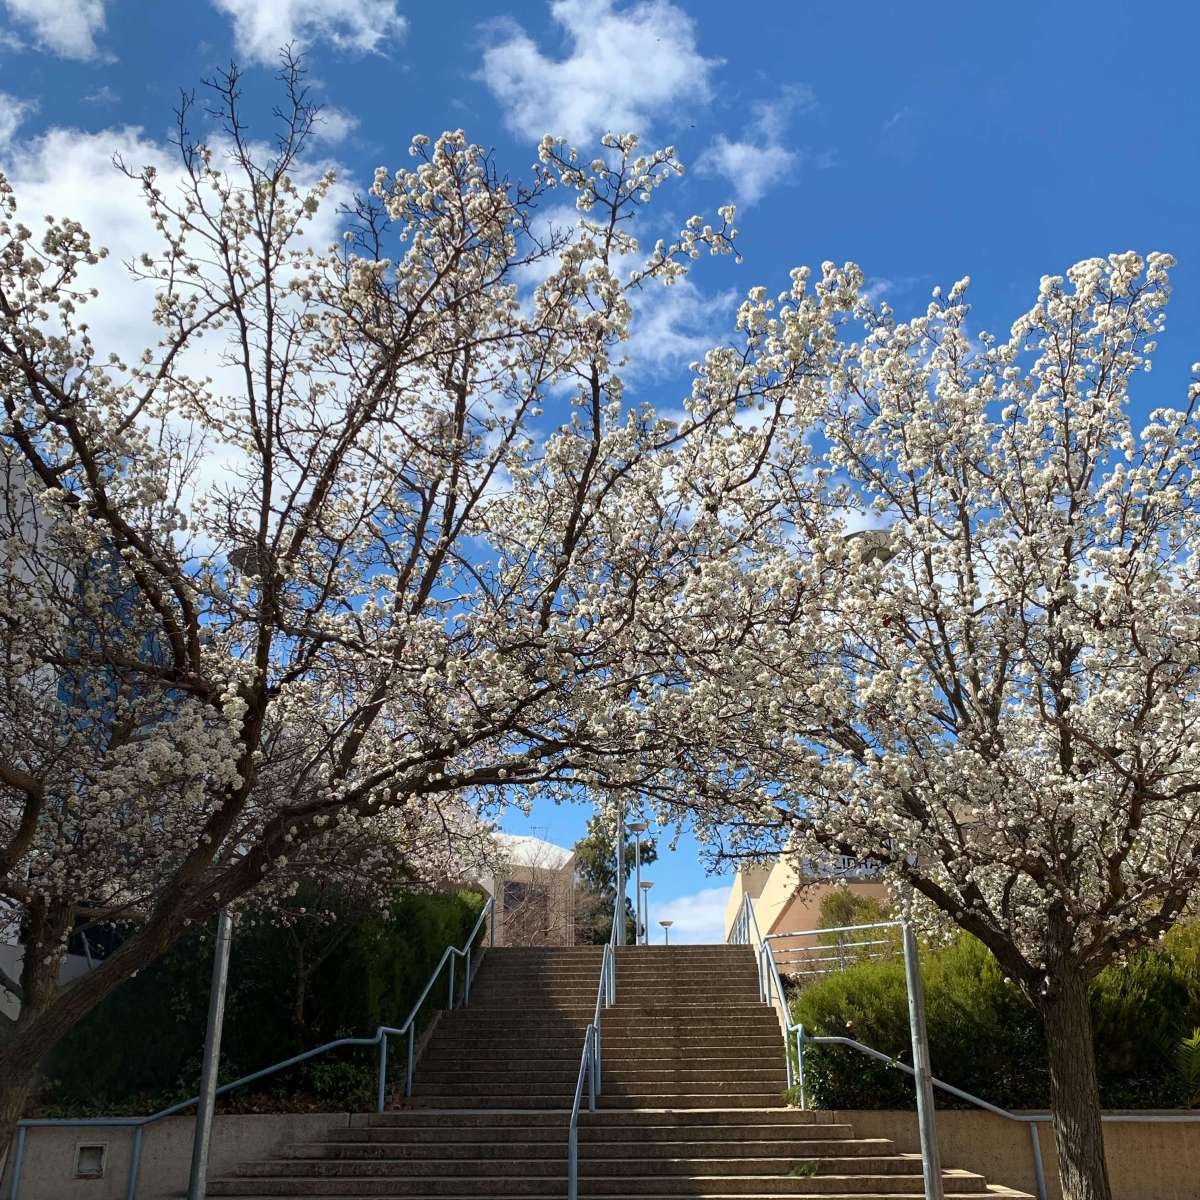 Flowers in springtime, Canberra, Australia